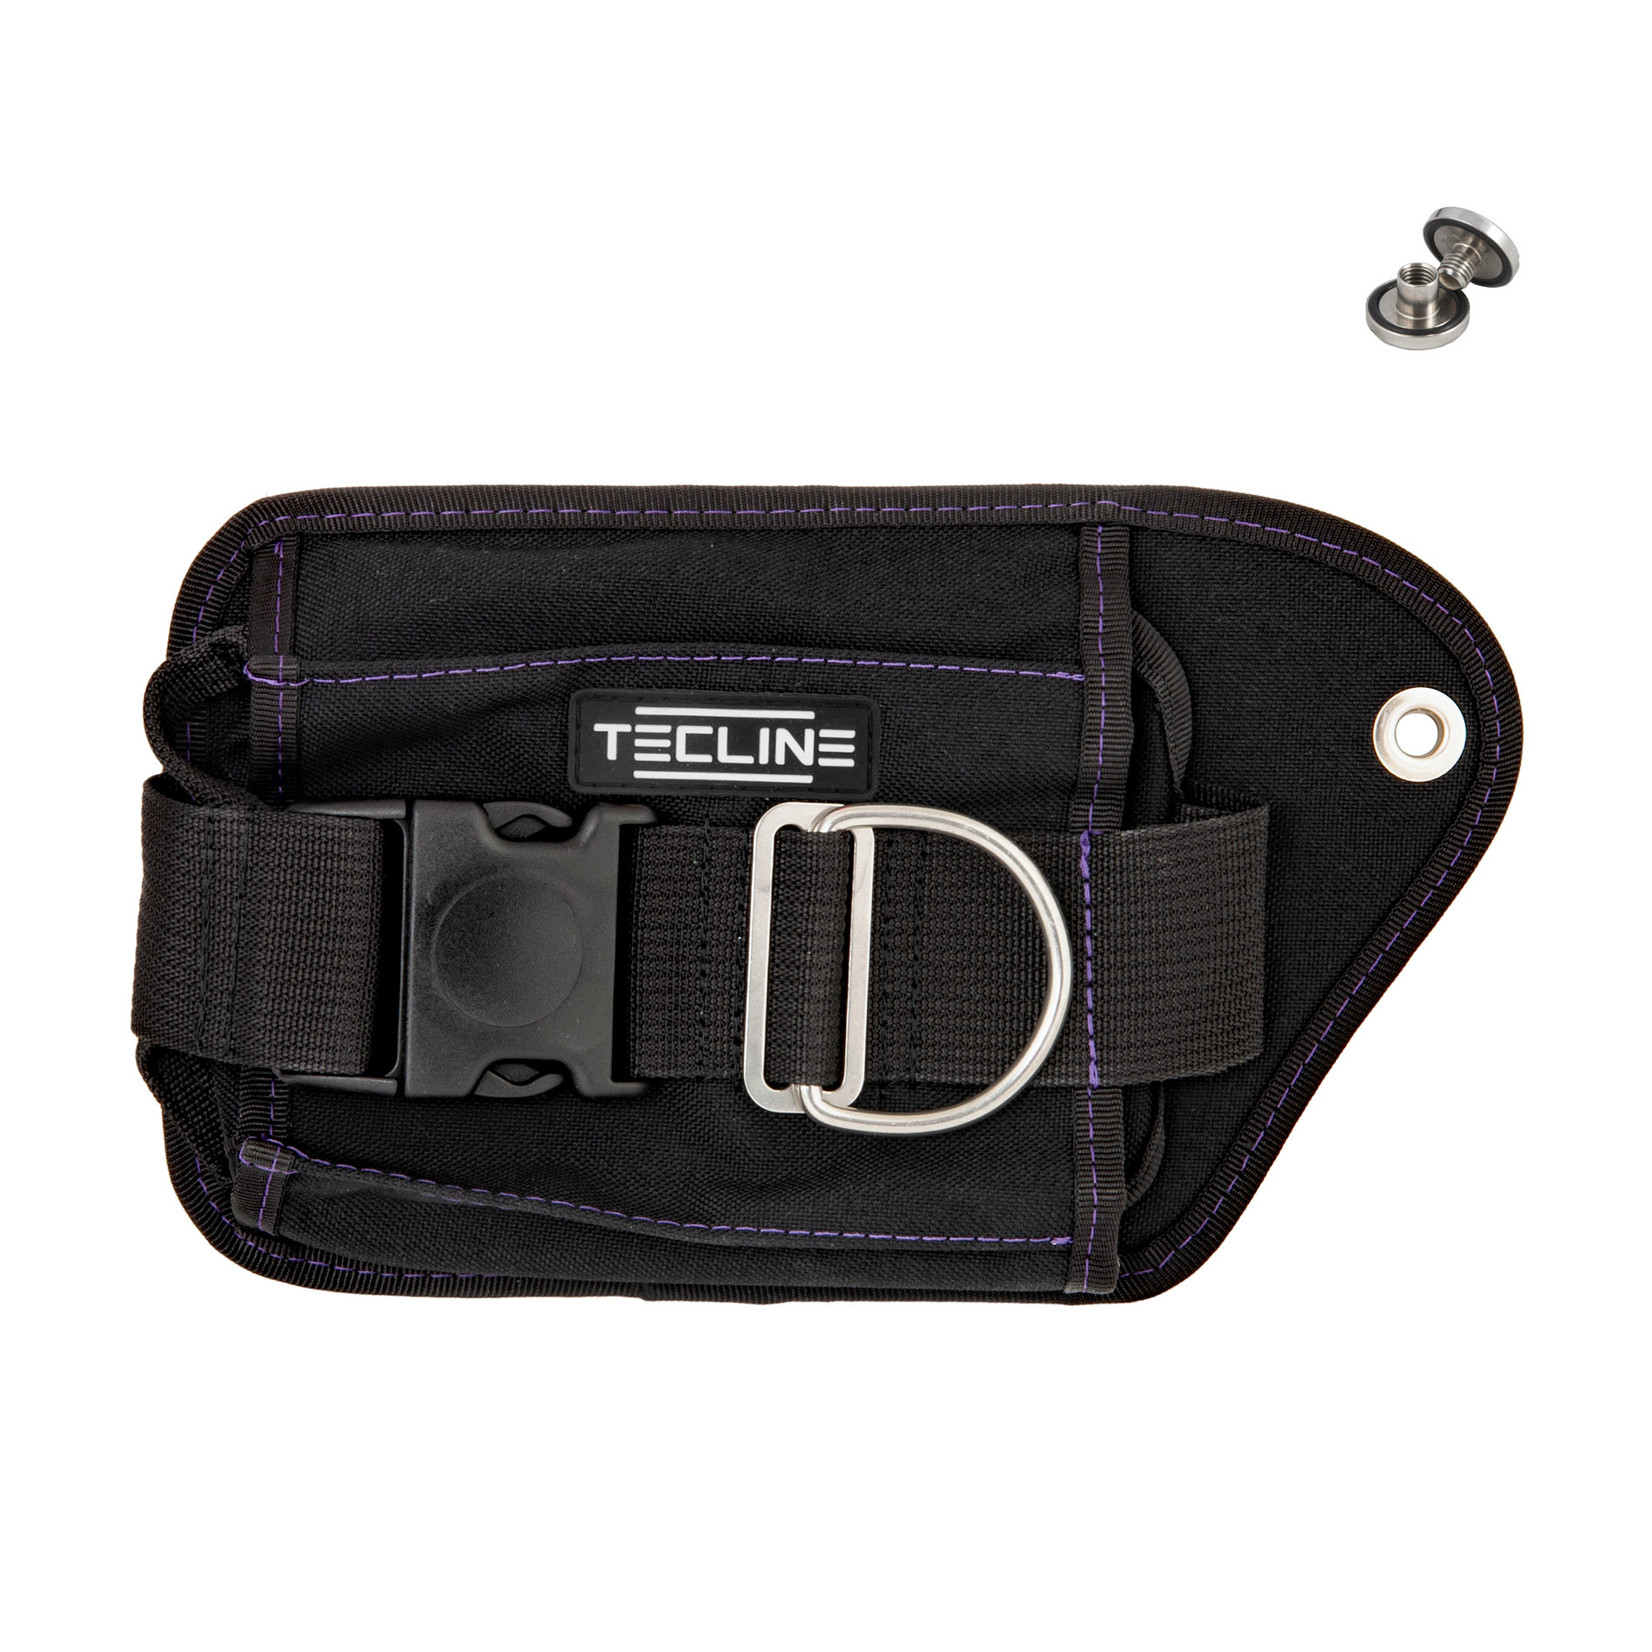 Tecline Double weight pocket LADY, left - Tecline